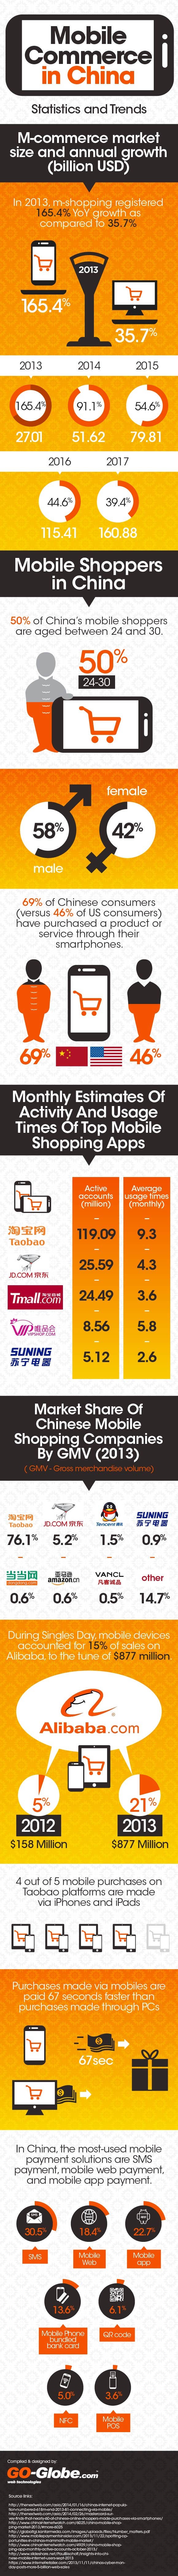 China's m-commerce spending to surpass $50 billion in 2014 (INFOGRAPHIC)